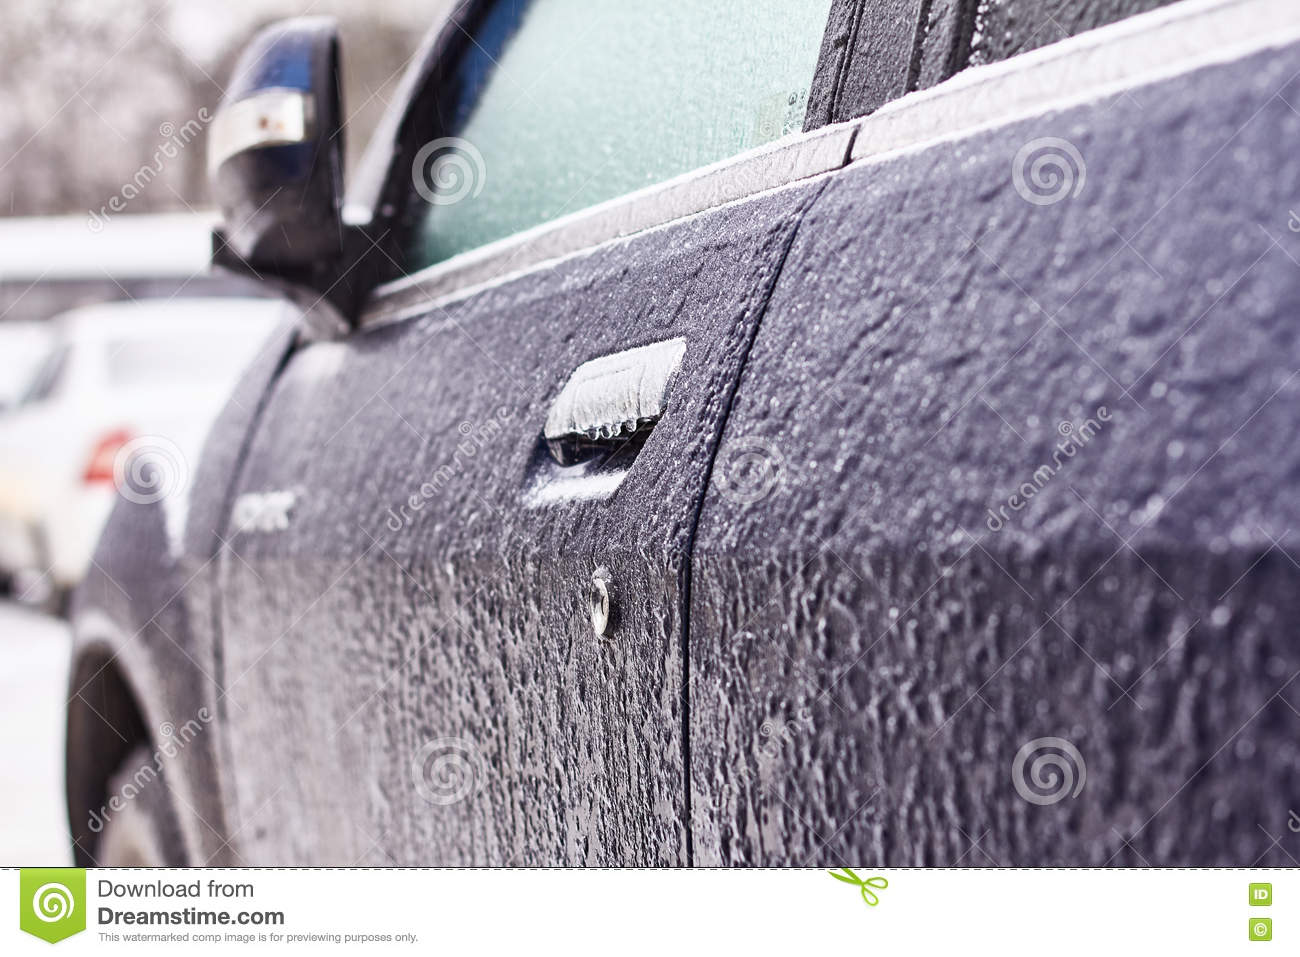 Door, Knob, Keyhole Of Car Covered With Snow And Ice After A